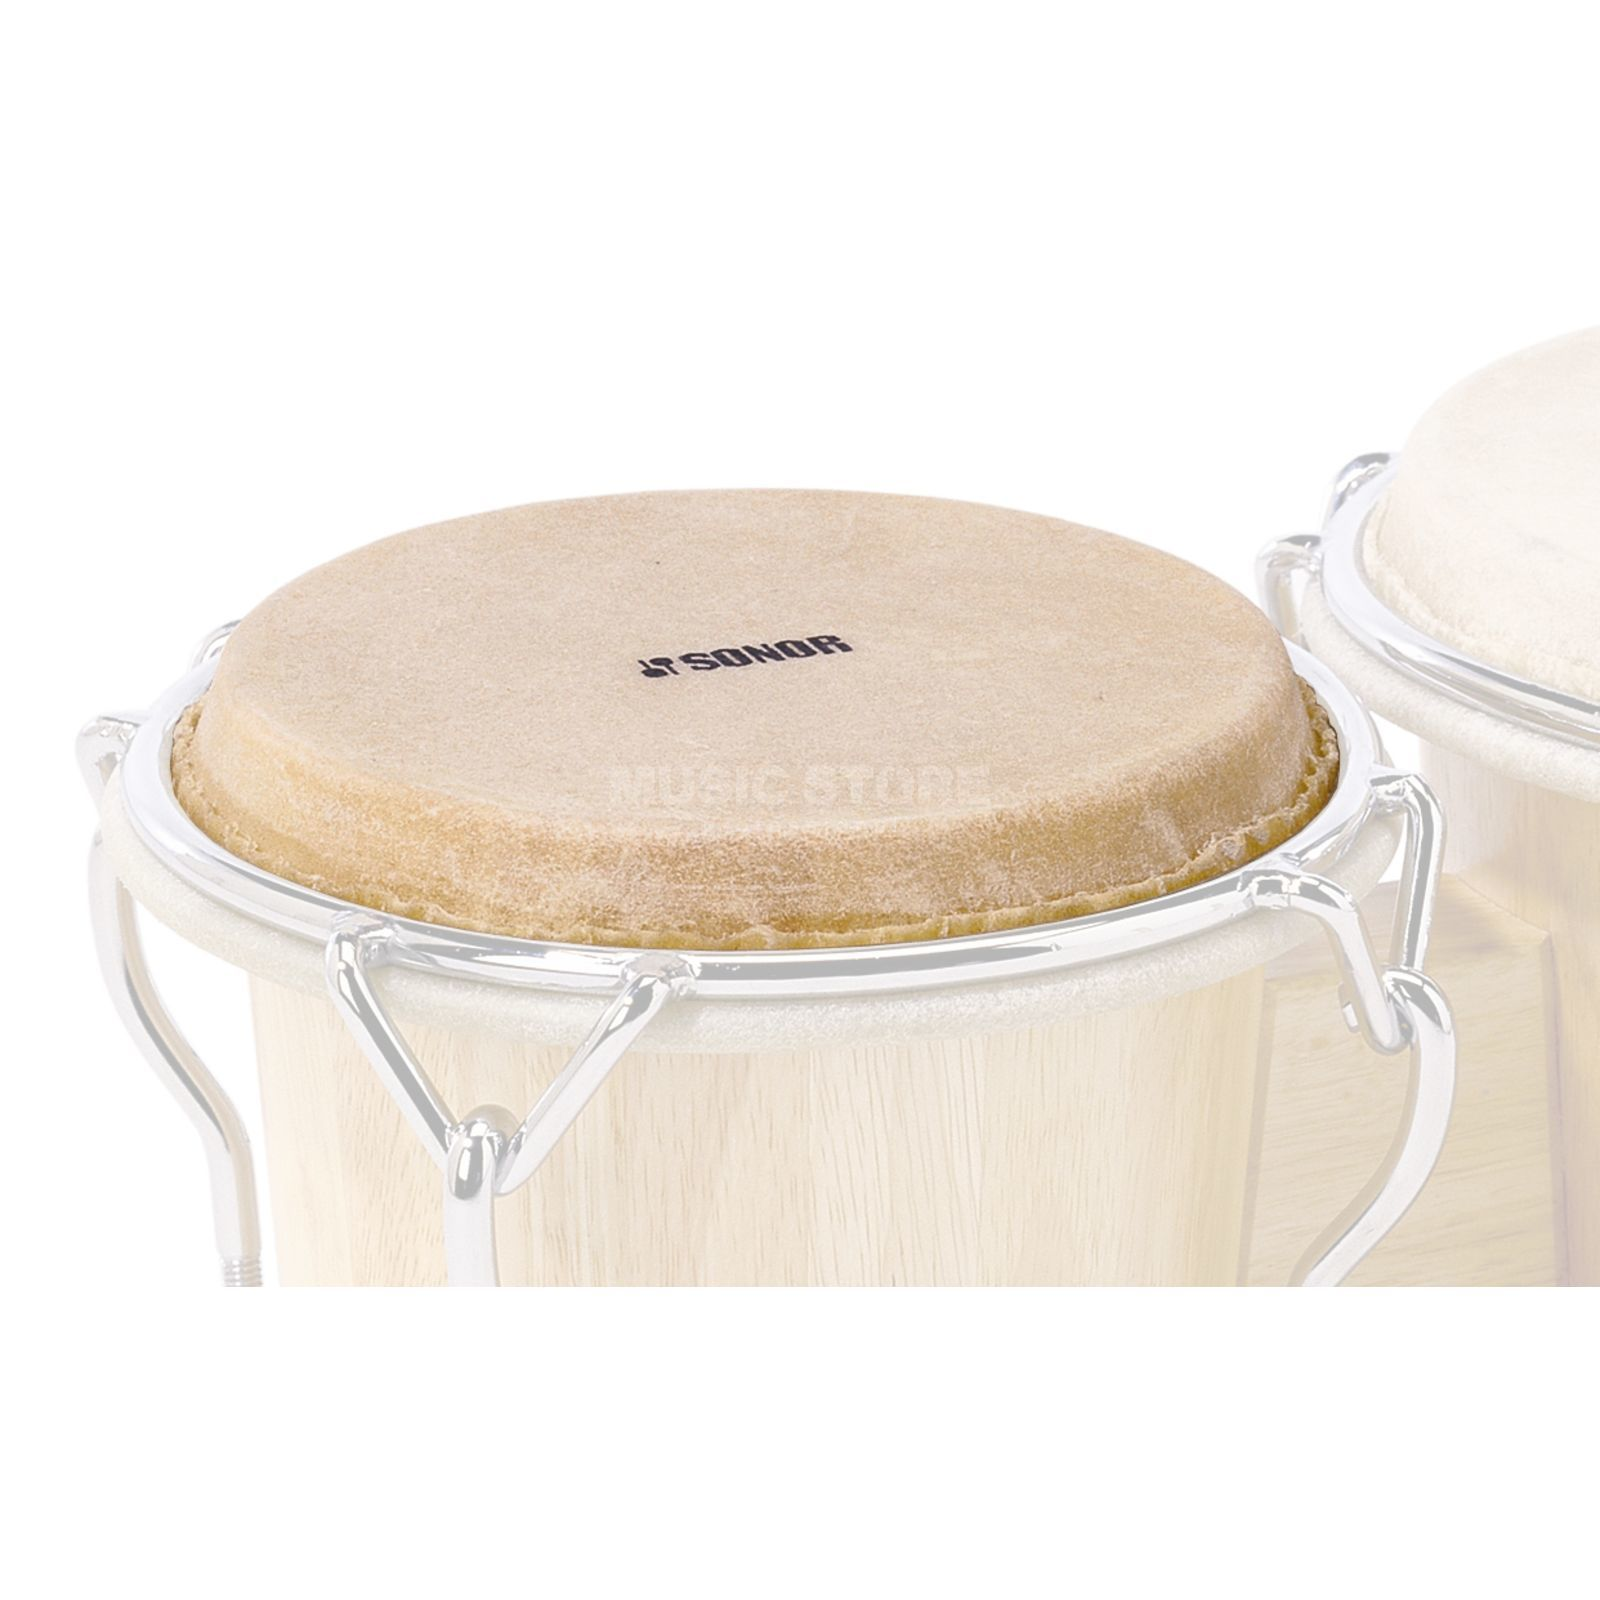 "Sonor Bongo Head GHB 7 CR, 7"" Curved Rim Изображение товара"